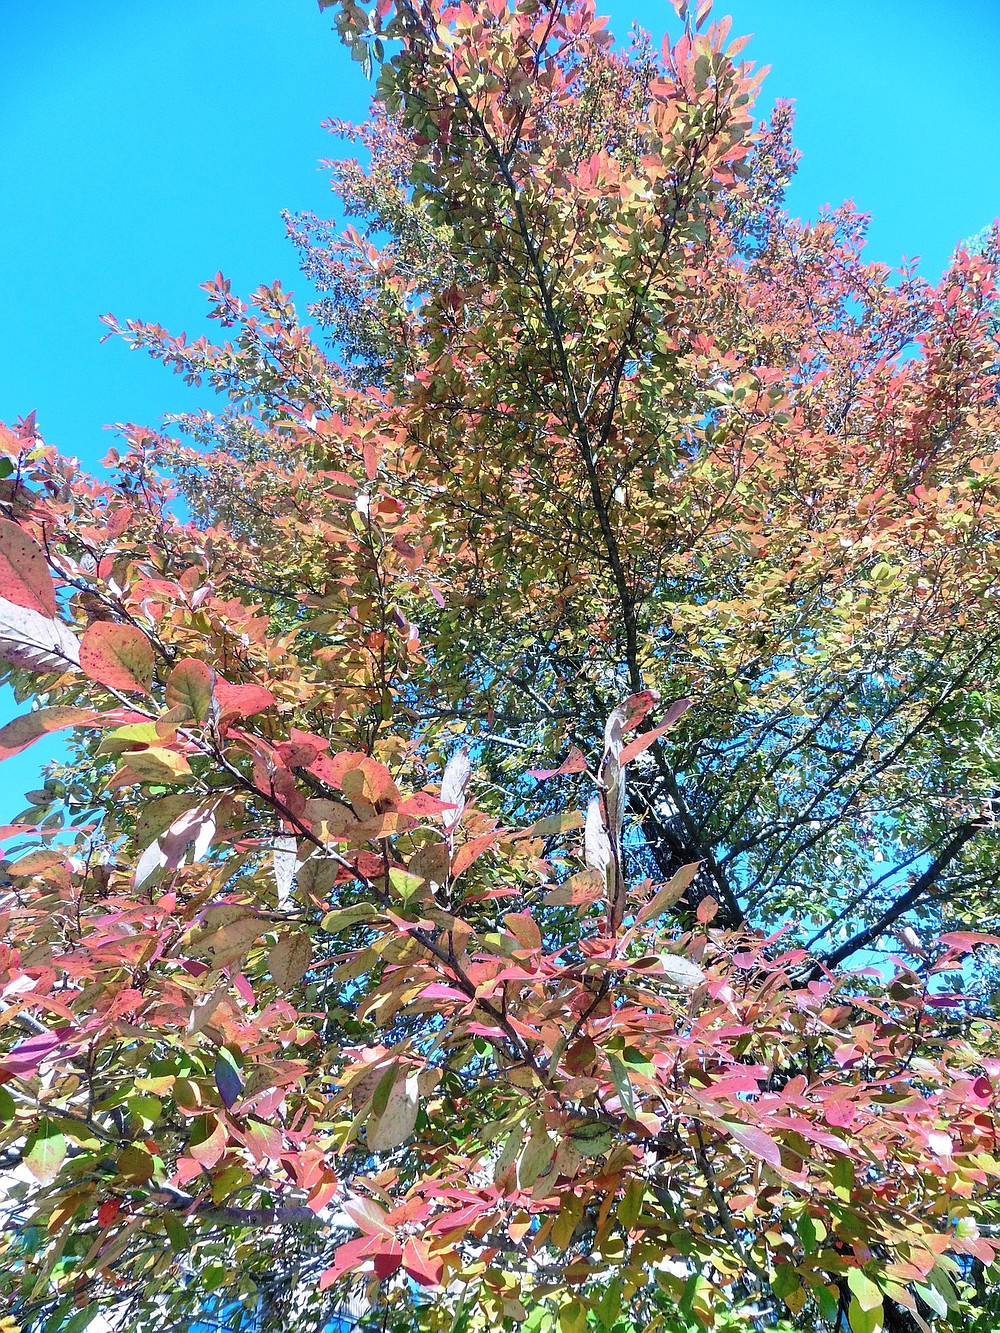 The Blackgum grows up from 30-60 feet tall with a spread of 20-30 feet that makes it work for smaller landscapes that benefit from height without excessive width. (Special to the Democrat-Gazette/Janet B. Carson)